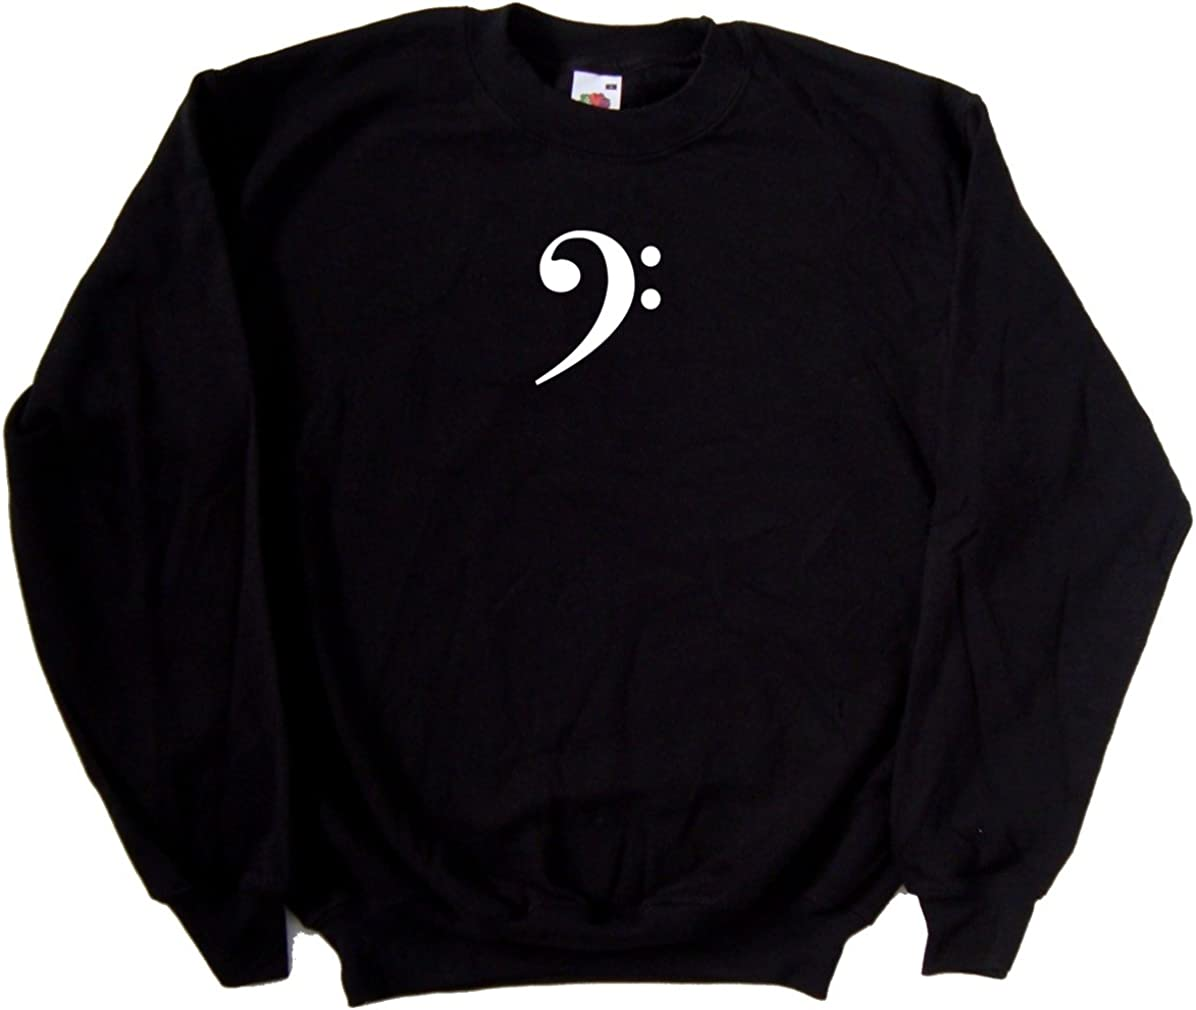 Bass Clef Music Black Sweatshirt